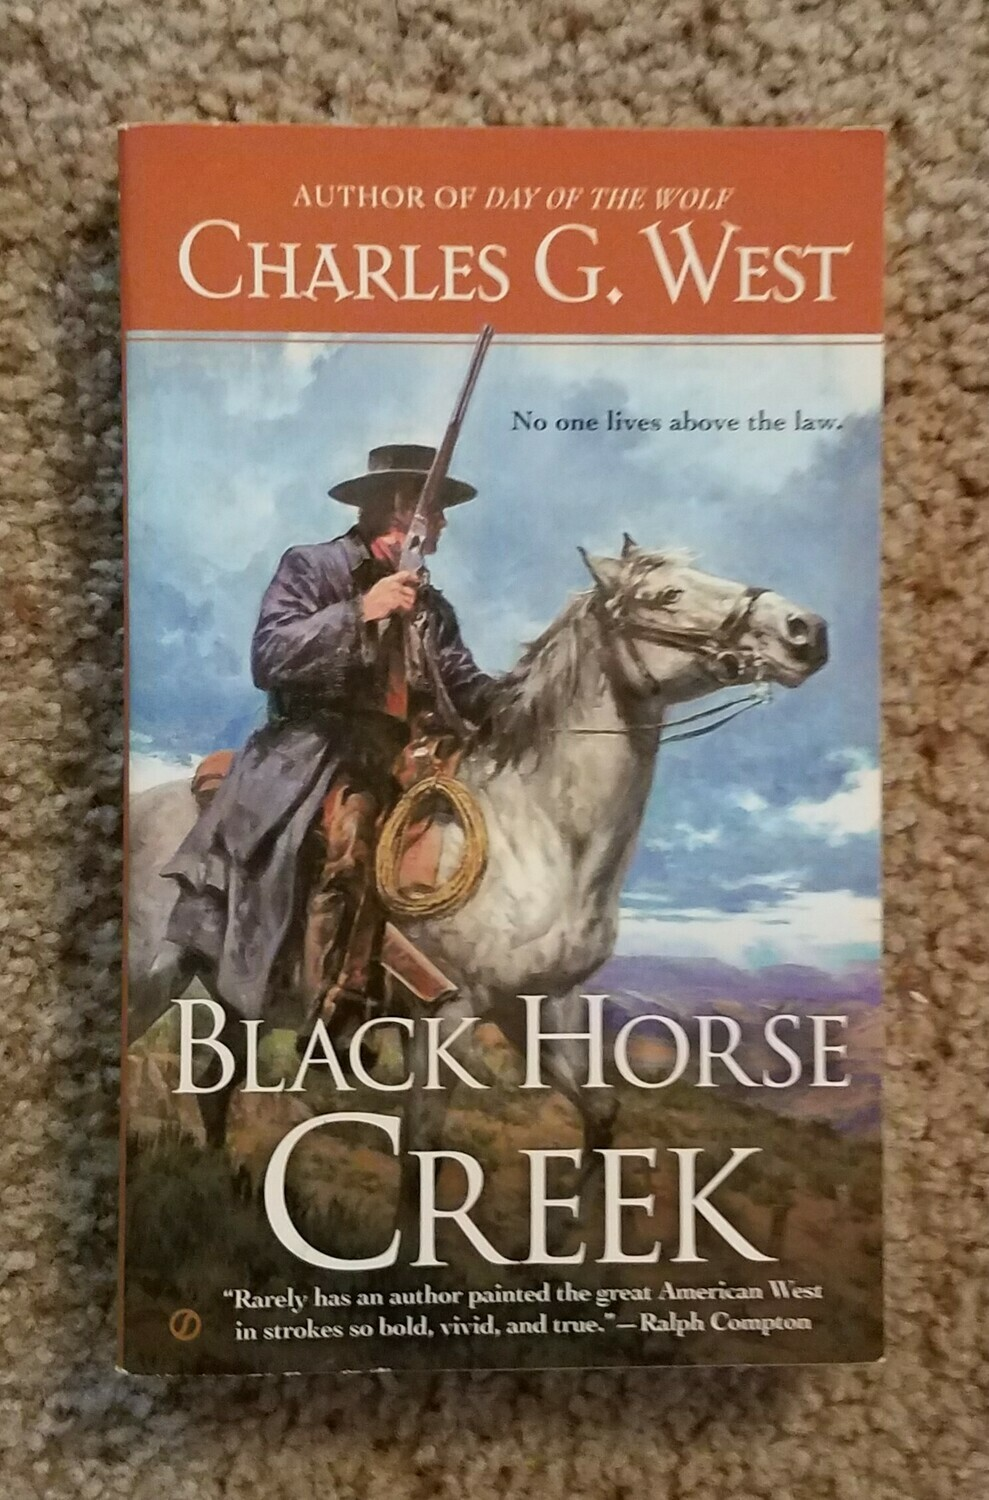 Black Horse Creek by Charles G. West